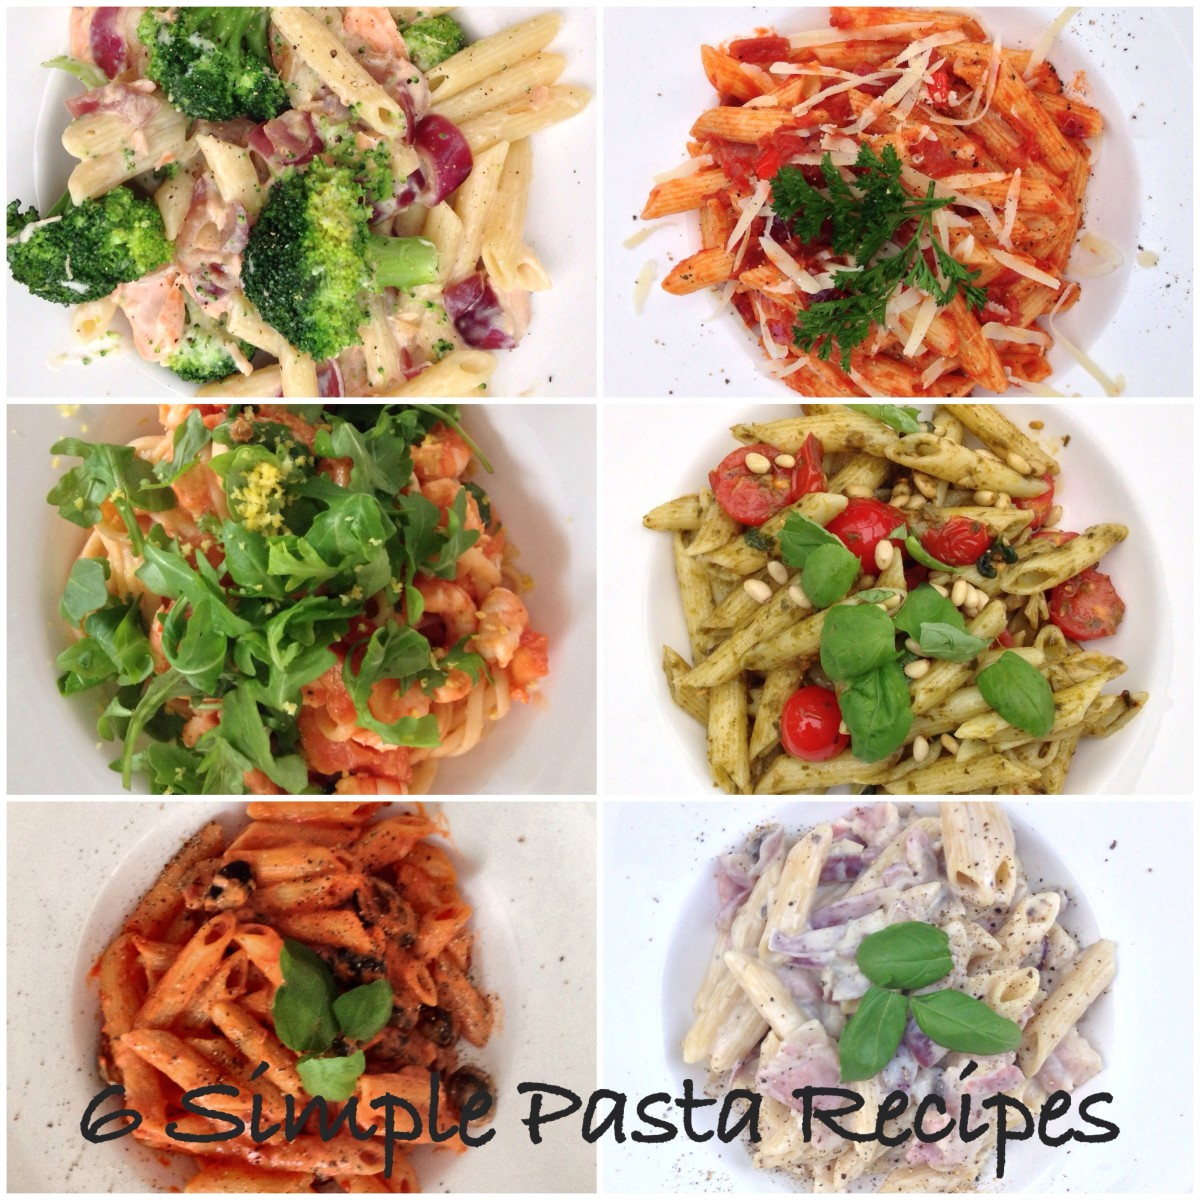 6 Quick and Easy Pasta Recipes